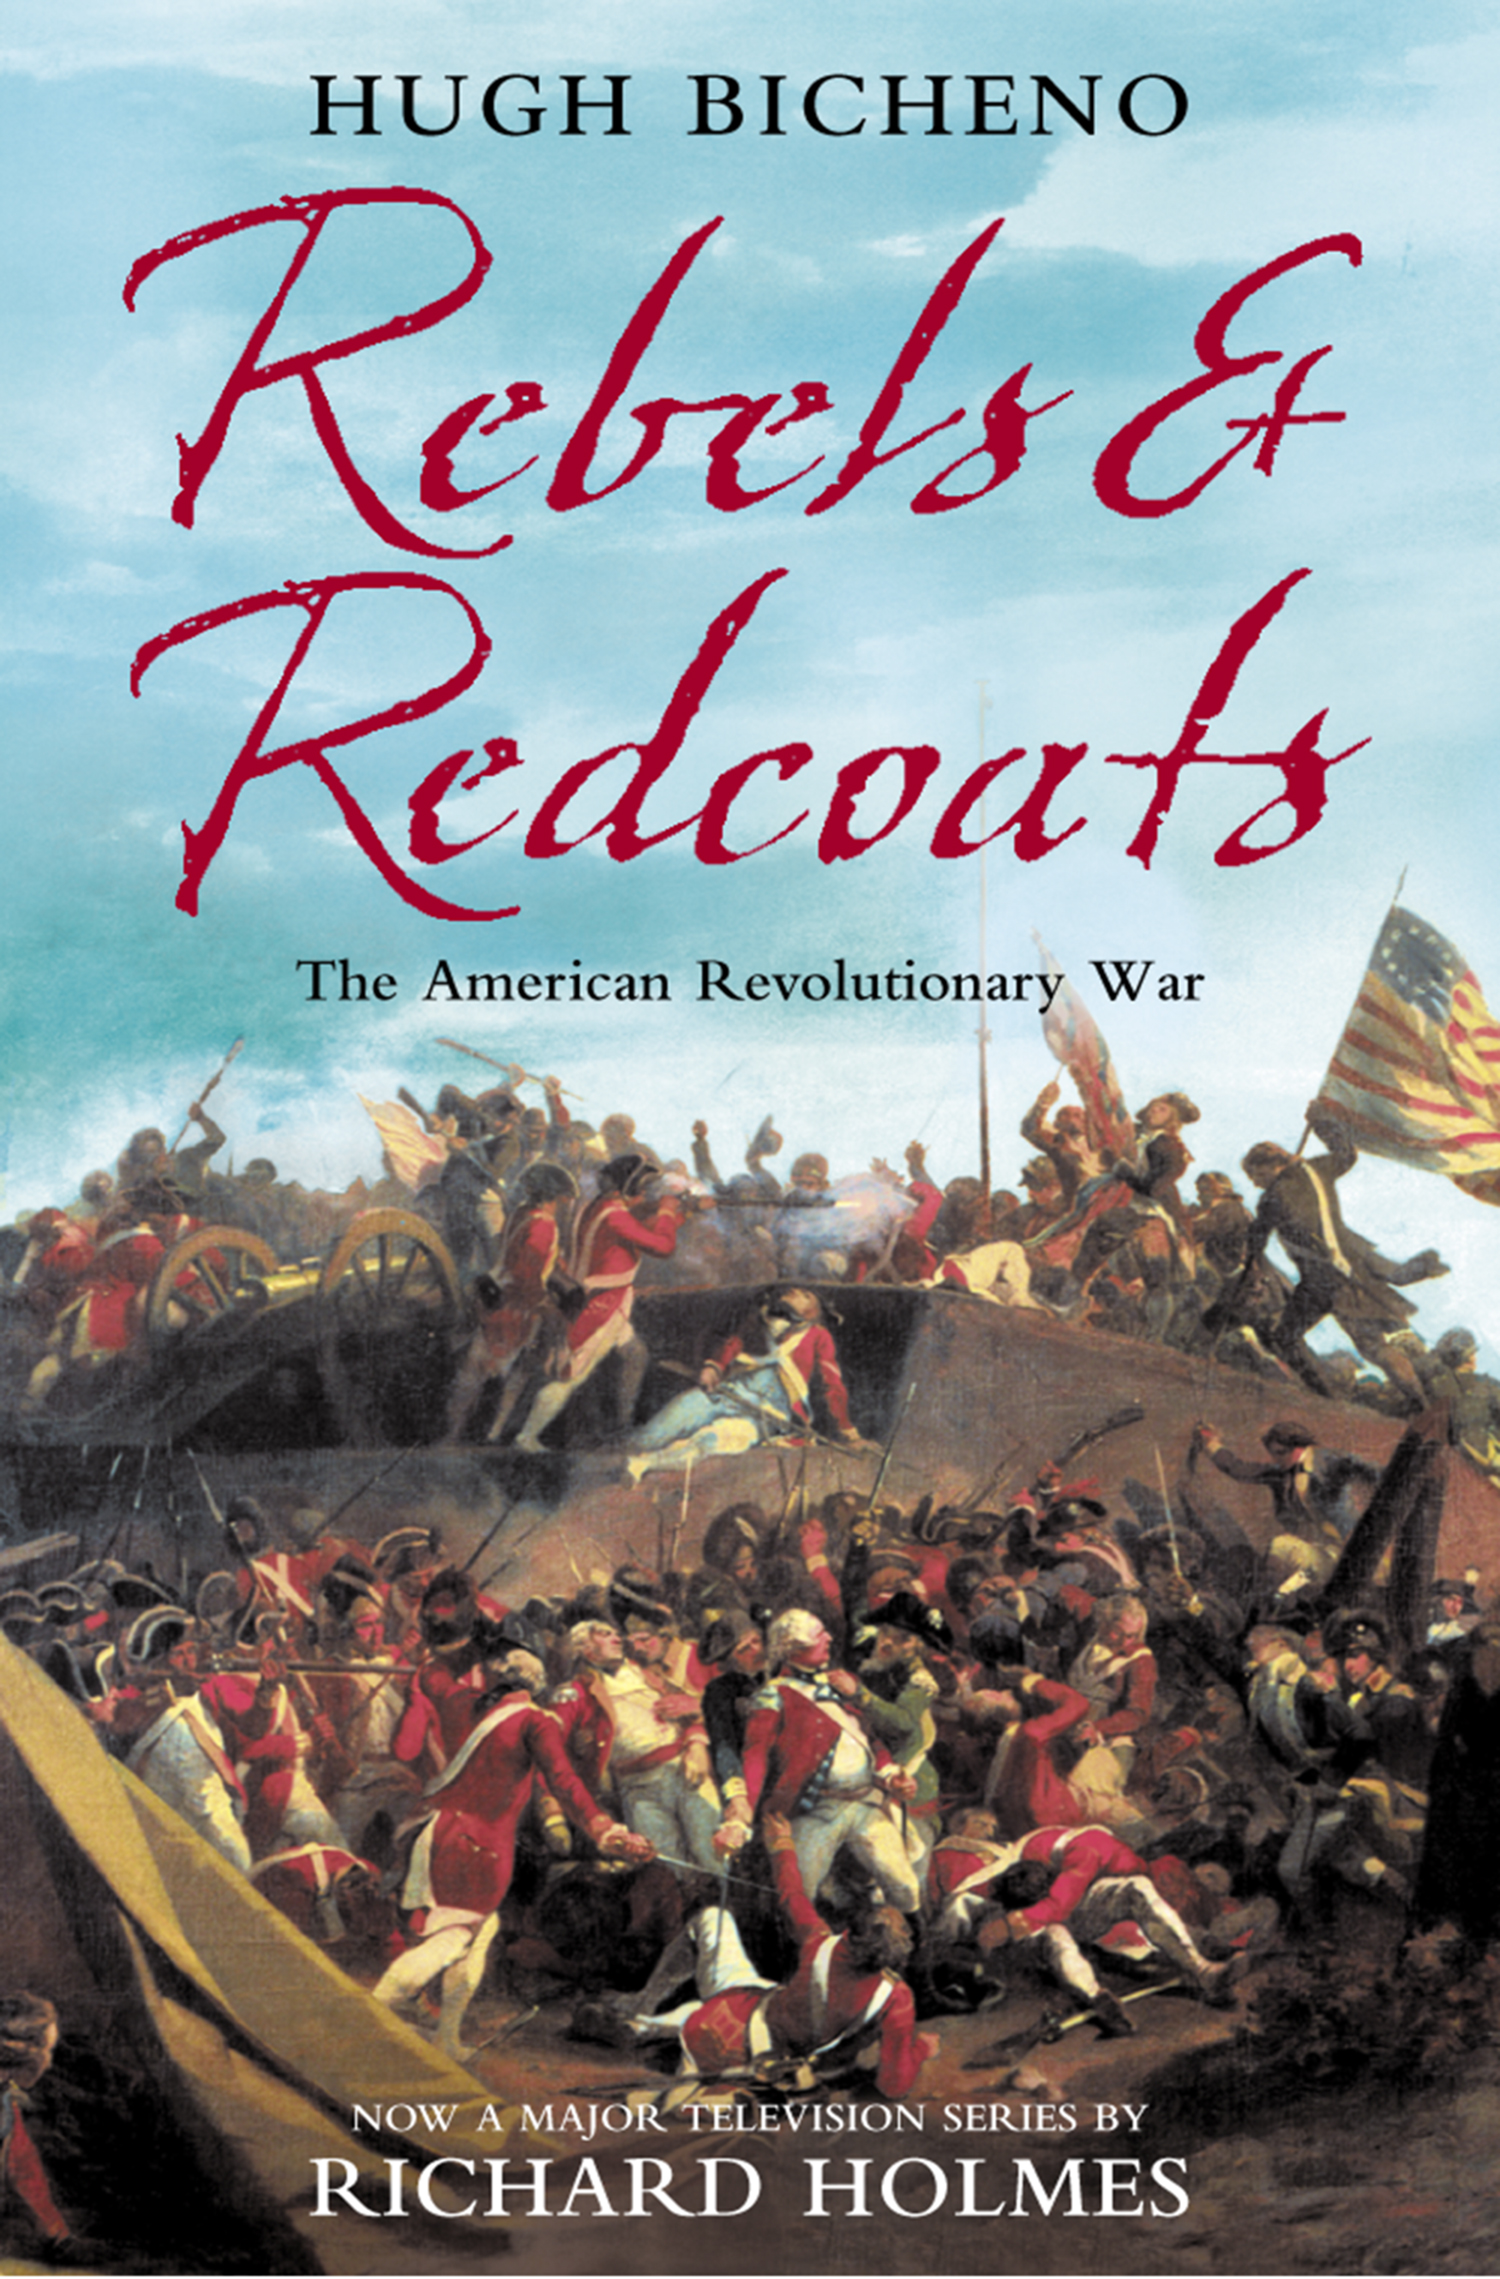 the american revolutionary war and american The american revolutionary war was a war fought between great britain and the original 13 british colonies in north america the war took place from 1775 to 1783 the.